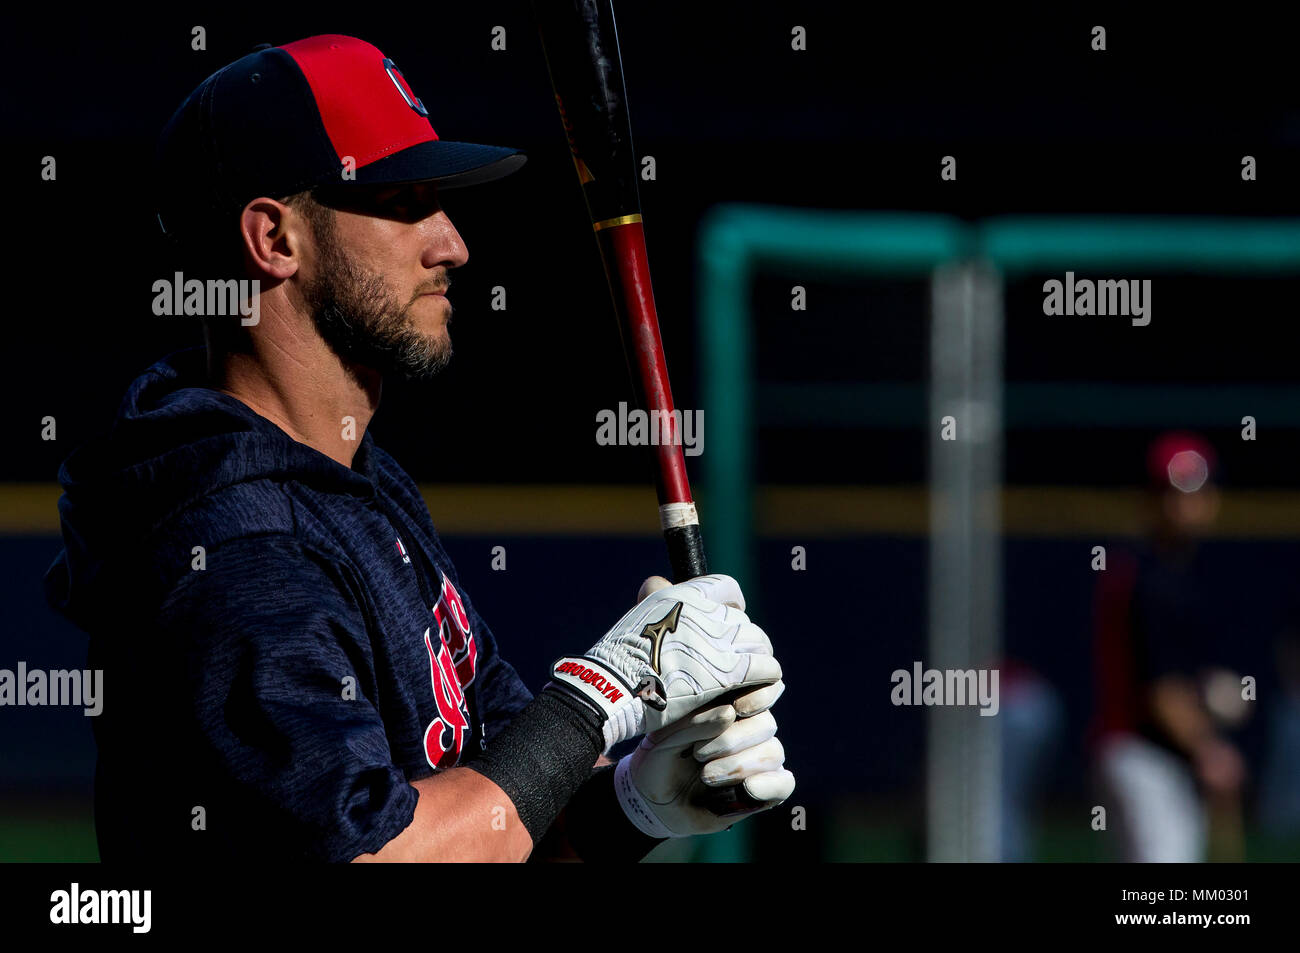 Milwaukee, WI, USA. 8th May, 2018. Cleveland Indians catcher Yan Gomes #7 takes batting practice as the sun shines through the stadiums windows before the Major League Baseball game between the Milwaukee Brewers and the Cleveland Indians at Miller Park in Milwaukee, WI. John Fisher/CSM/Alamy Live News - Stock Image